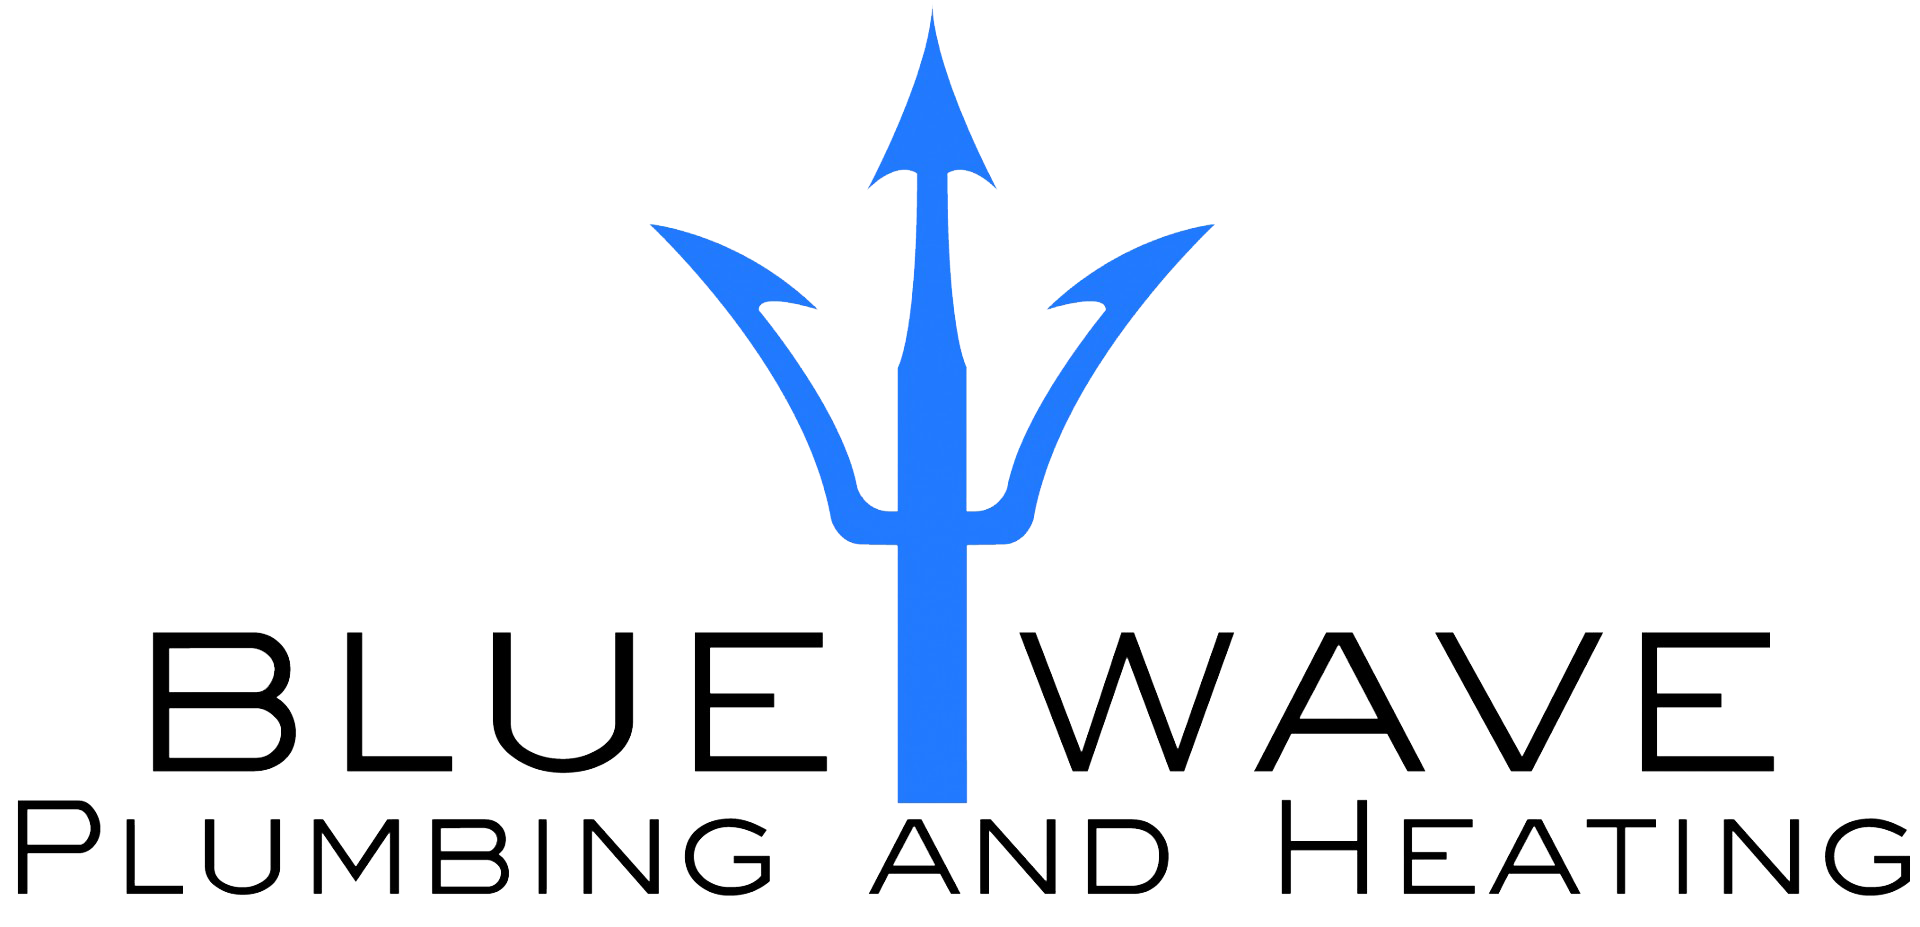 Bluewave plumbing and heating logo